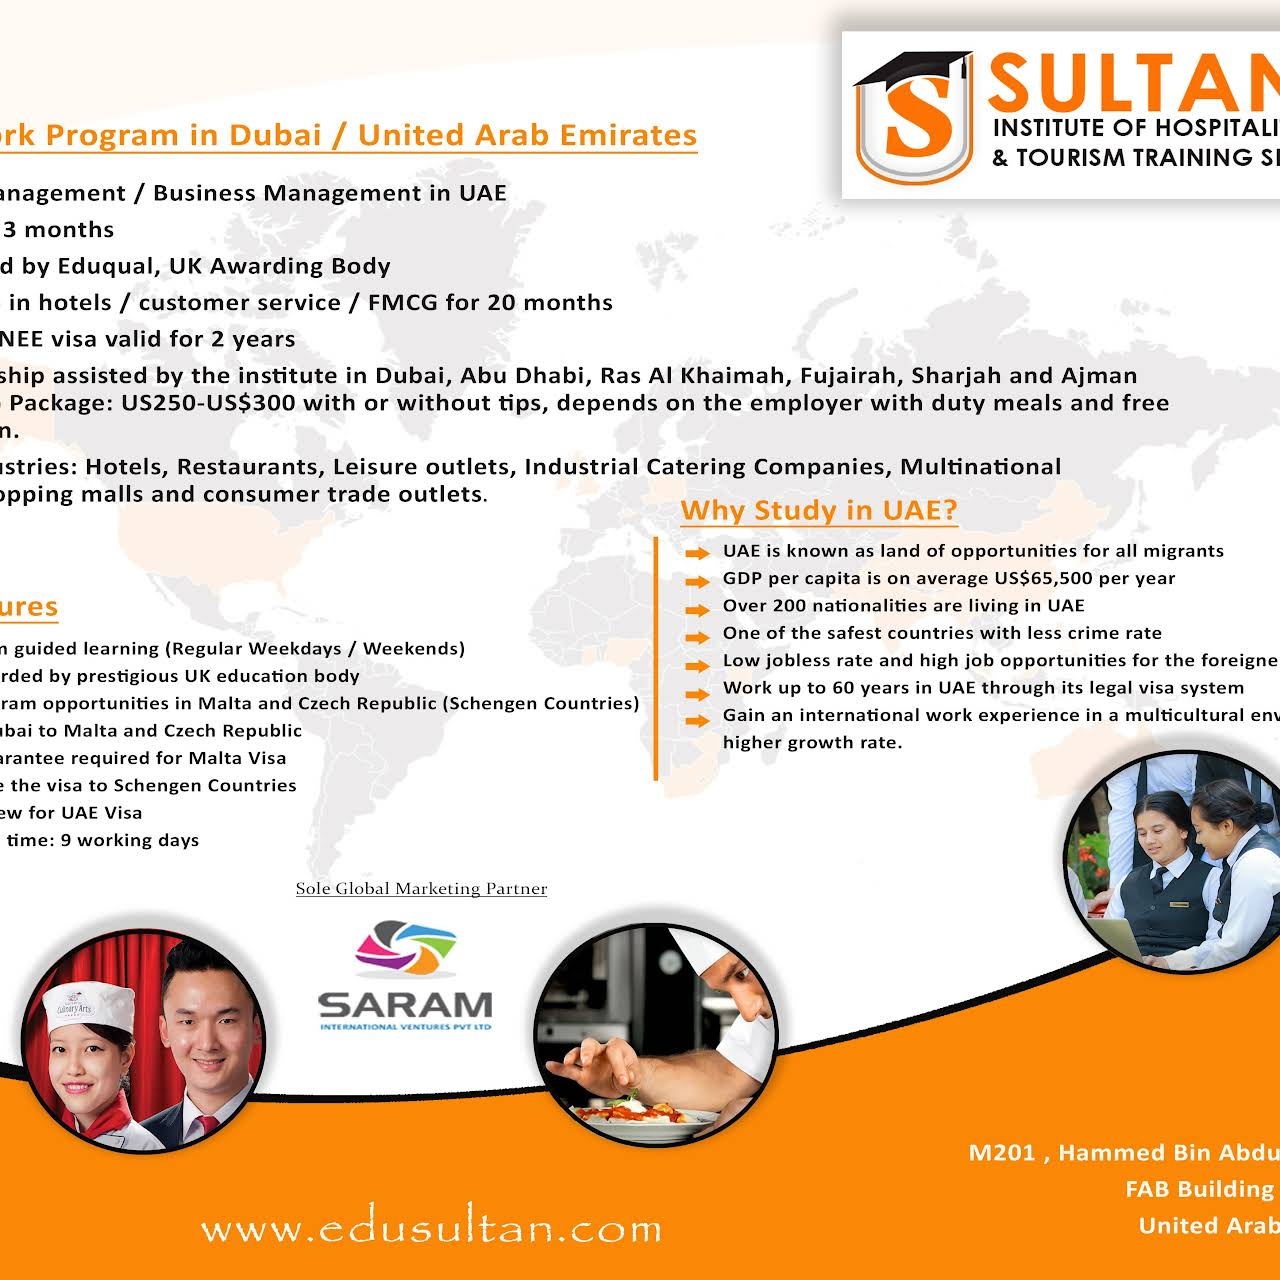 Sultan Institute of Hospitality and Tourism Training